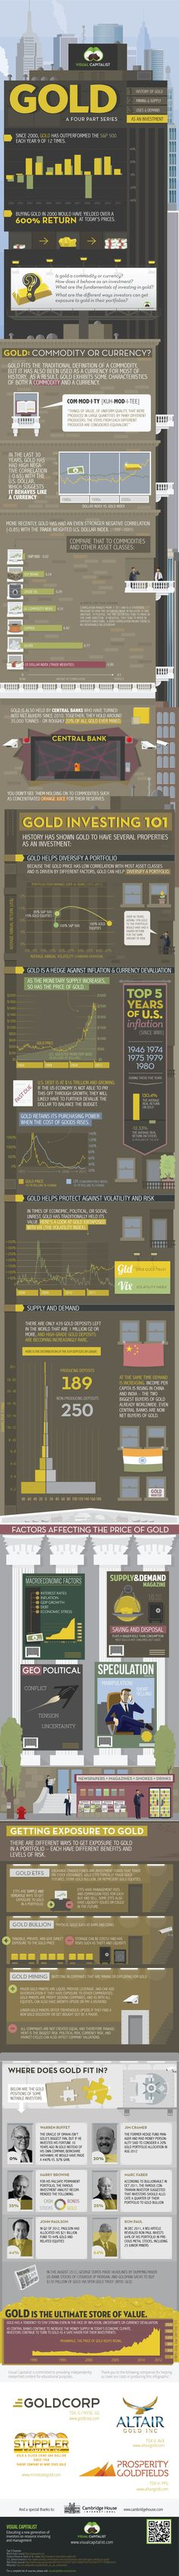 Gold Infographic:  Gold as an Investment